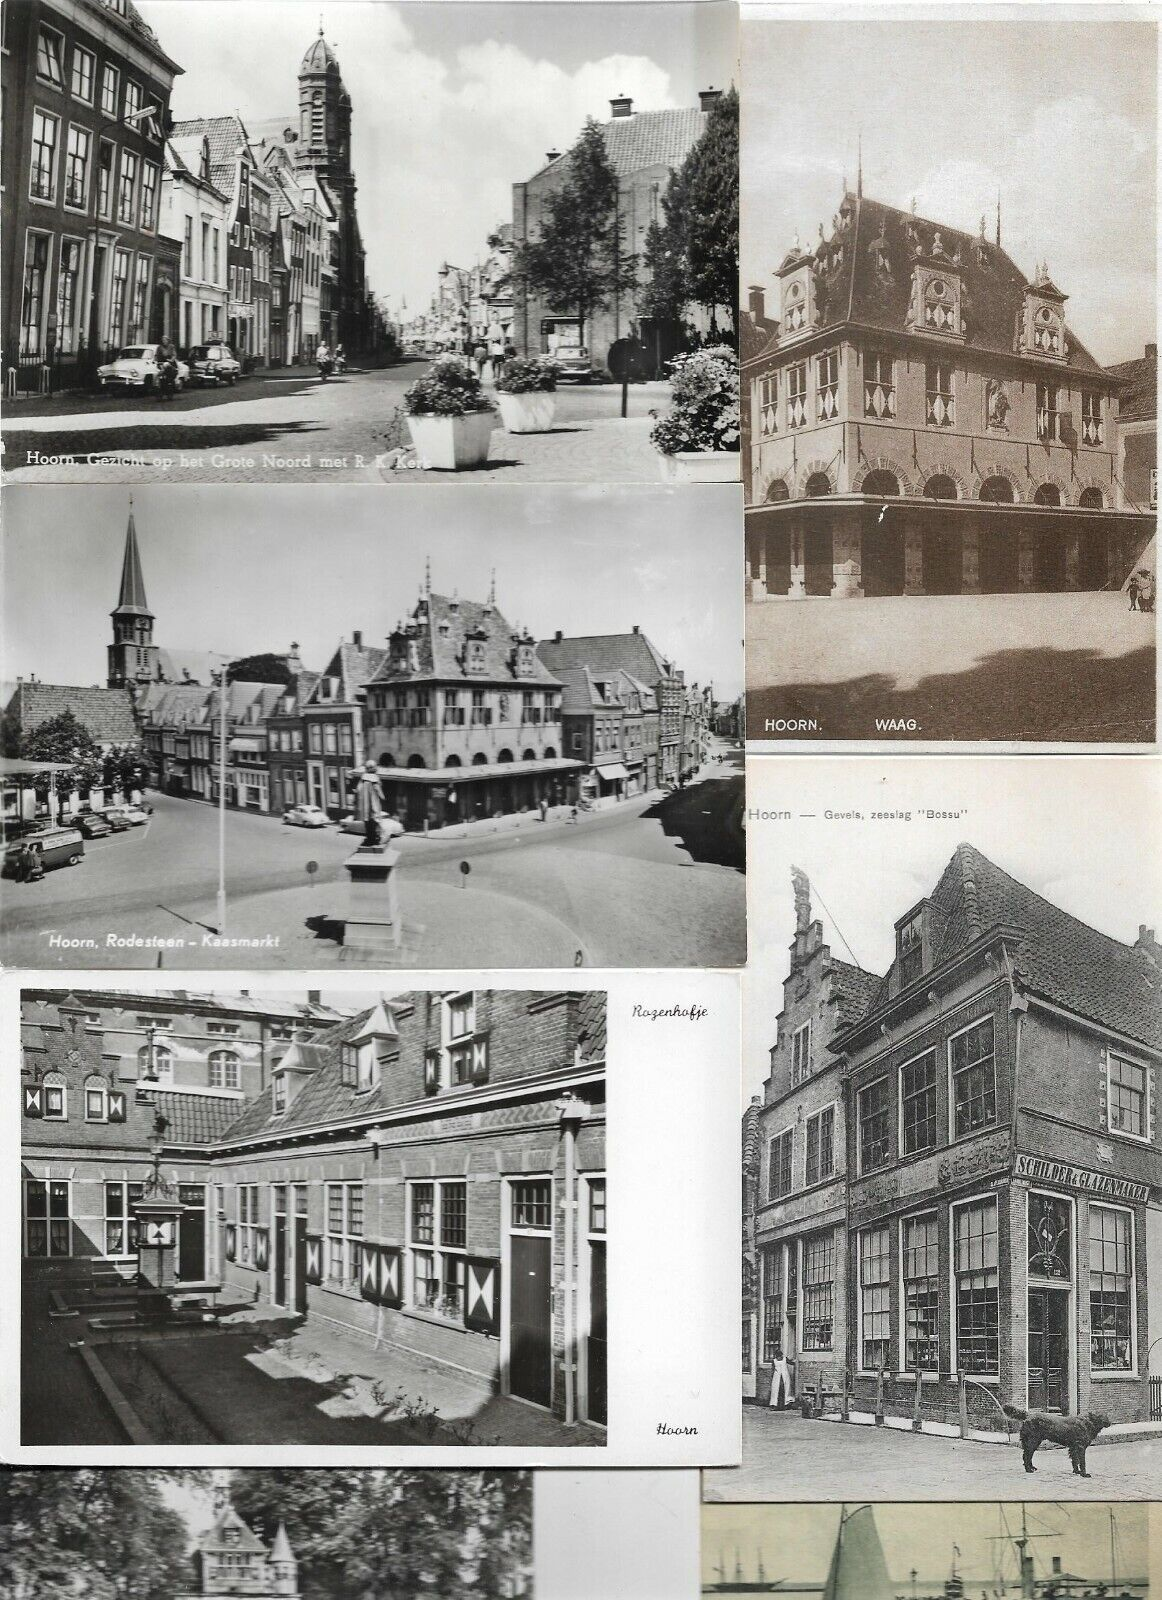 Netherlands Hoorn Museum and more Postcard Lot of 49 RPPC and Printed 01.04 Без бренда - фотография #2